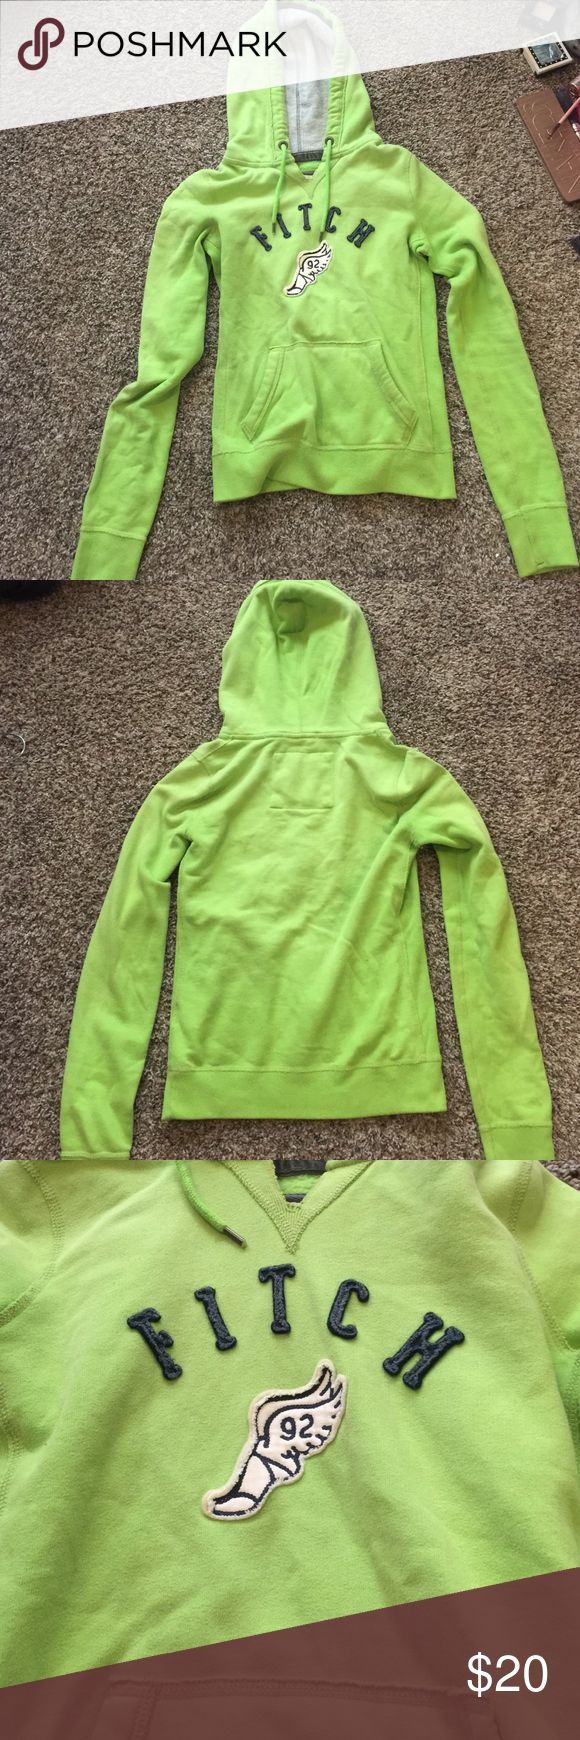 Abercrombie and fitch jacket This is a size small. No snags or stains. Abercrombie and fitch hoodie. Green and navy blue. Brand new condition. Abercrombie & Fitch Jackets & Coats